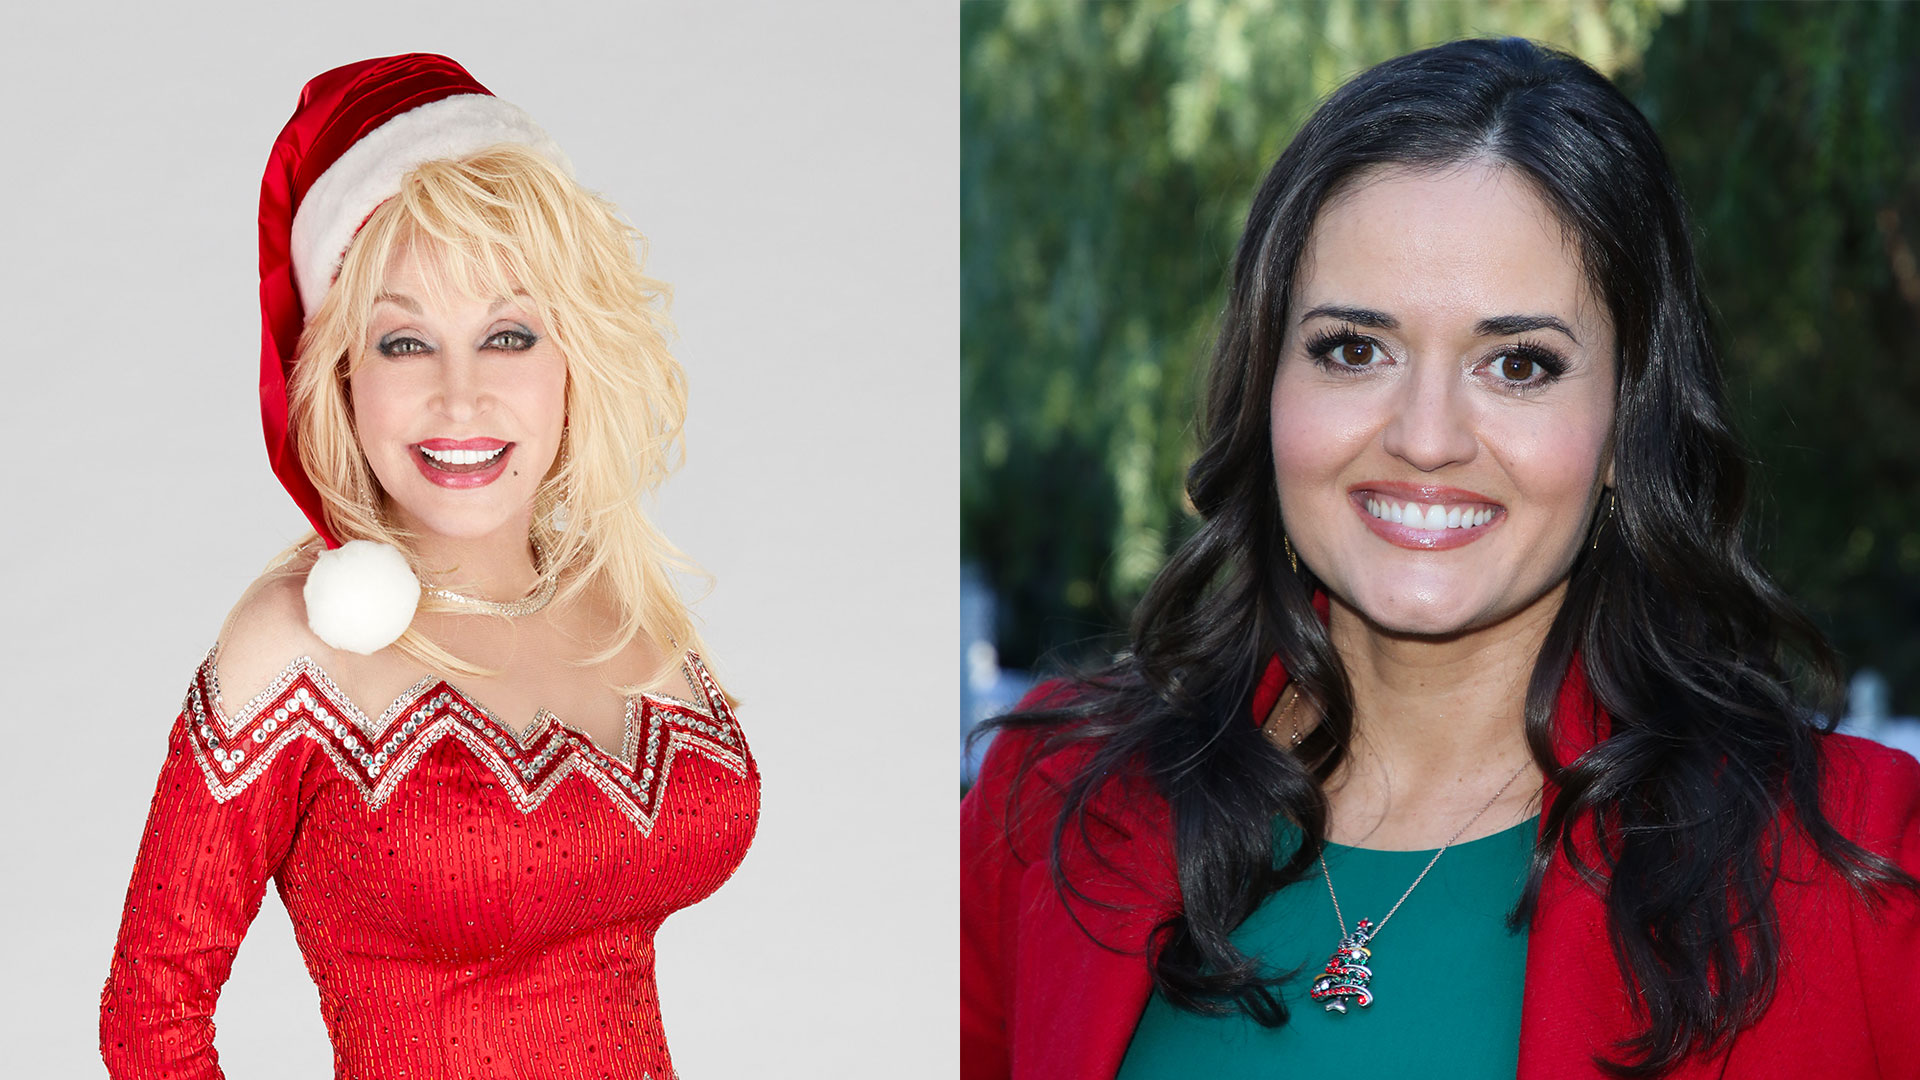 Dolly Parton and Danica McKellar